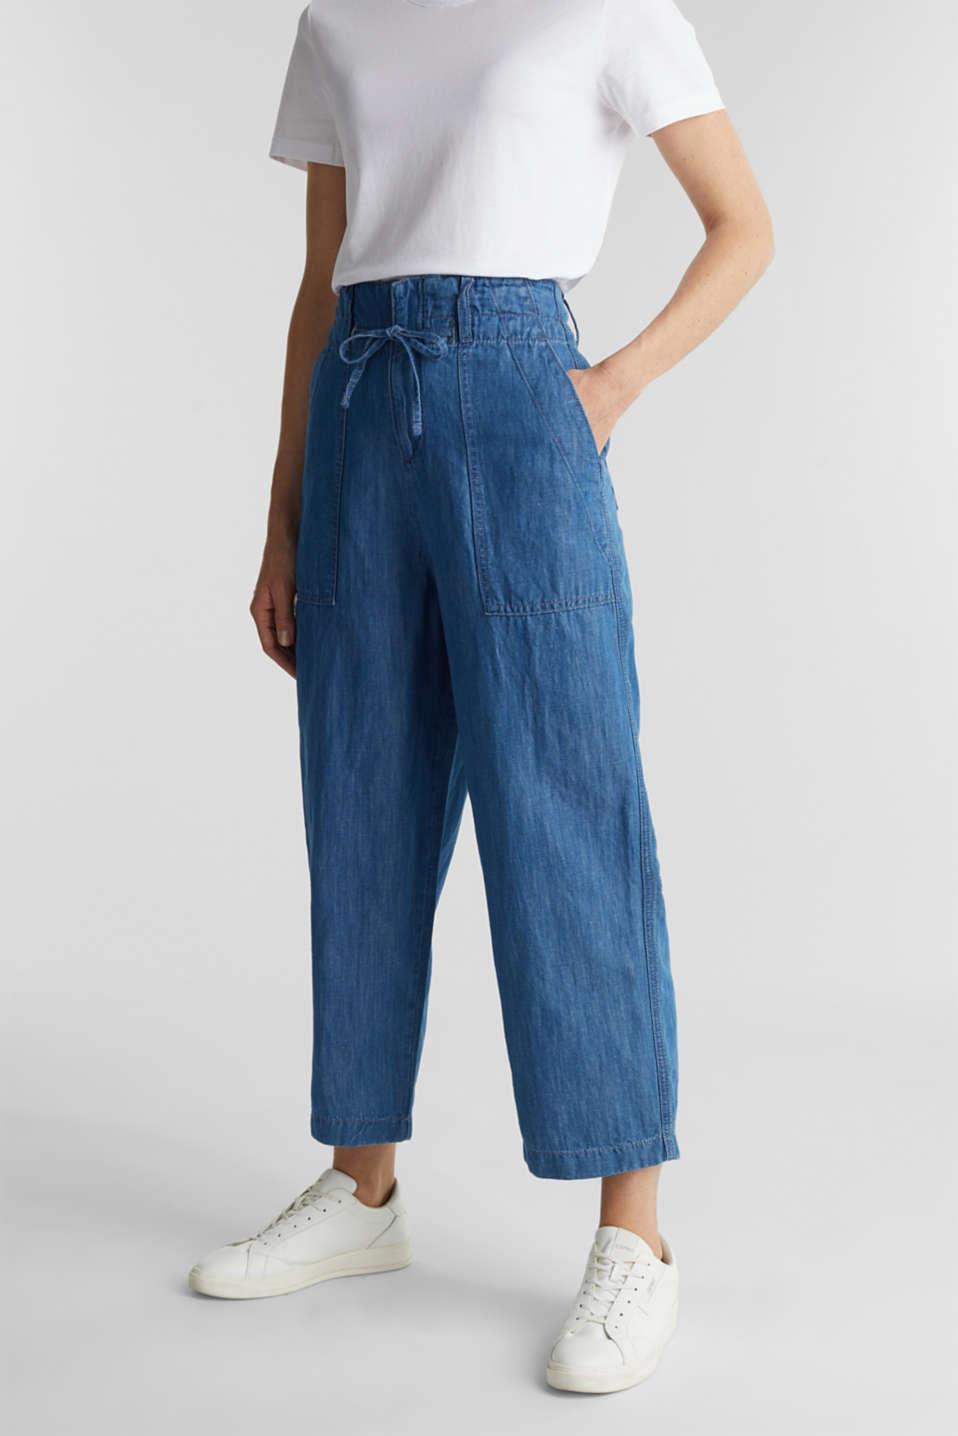 Esprit - Linen blend: Lightweight denim culottes